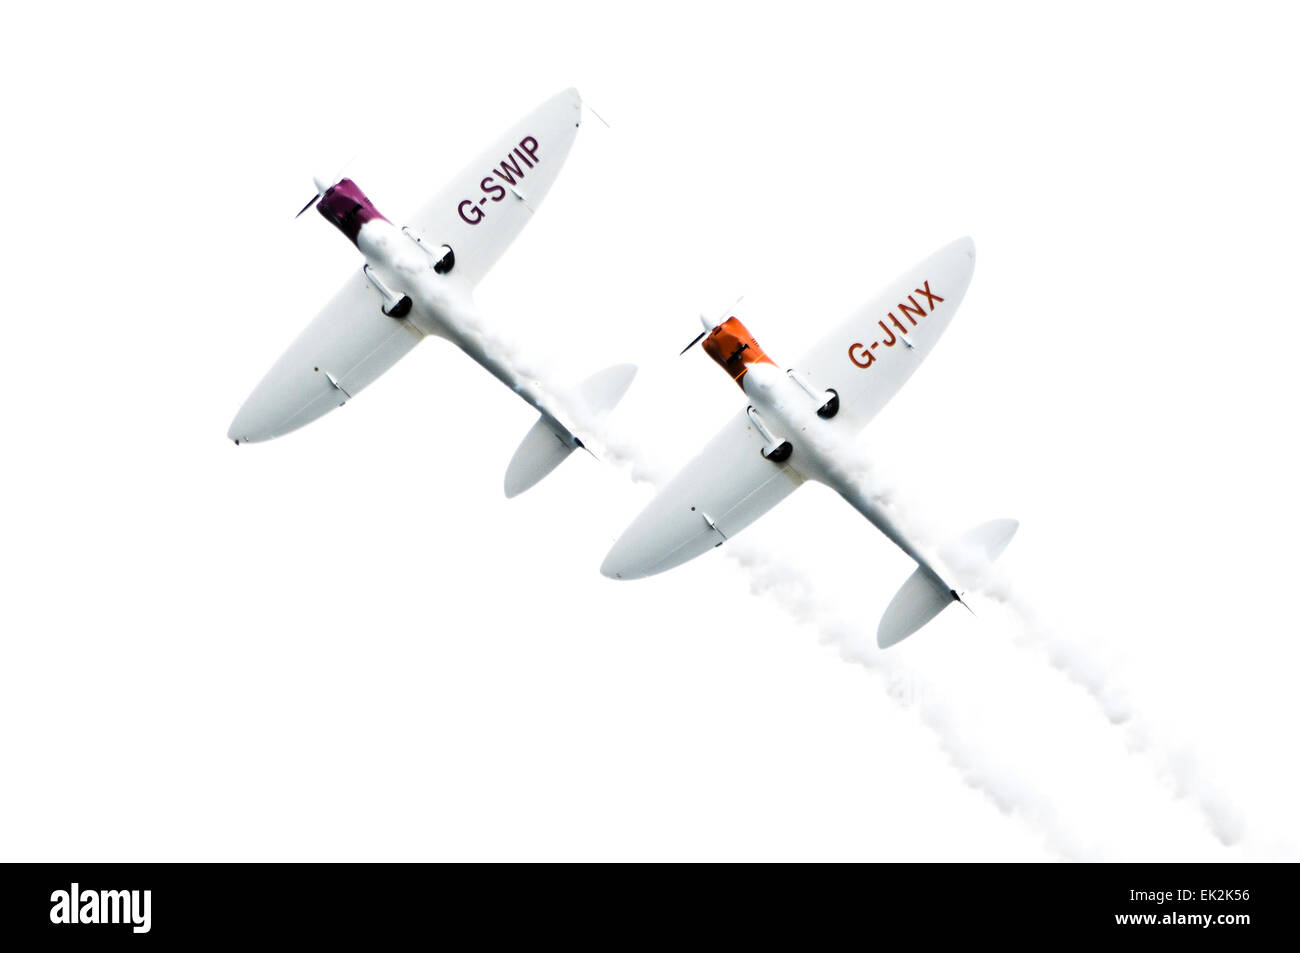 Silence Twisters (G-SWIP and G-JINX) from the  Twister Team flying in close formation - Stock Image